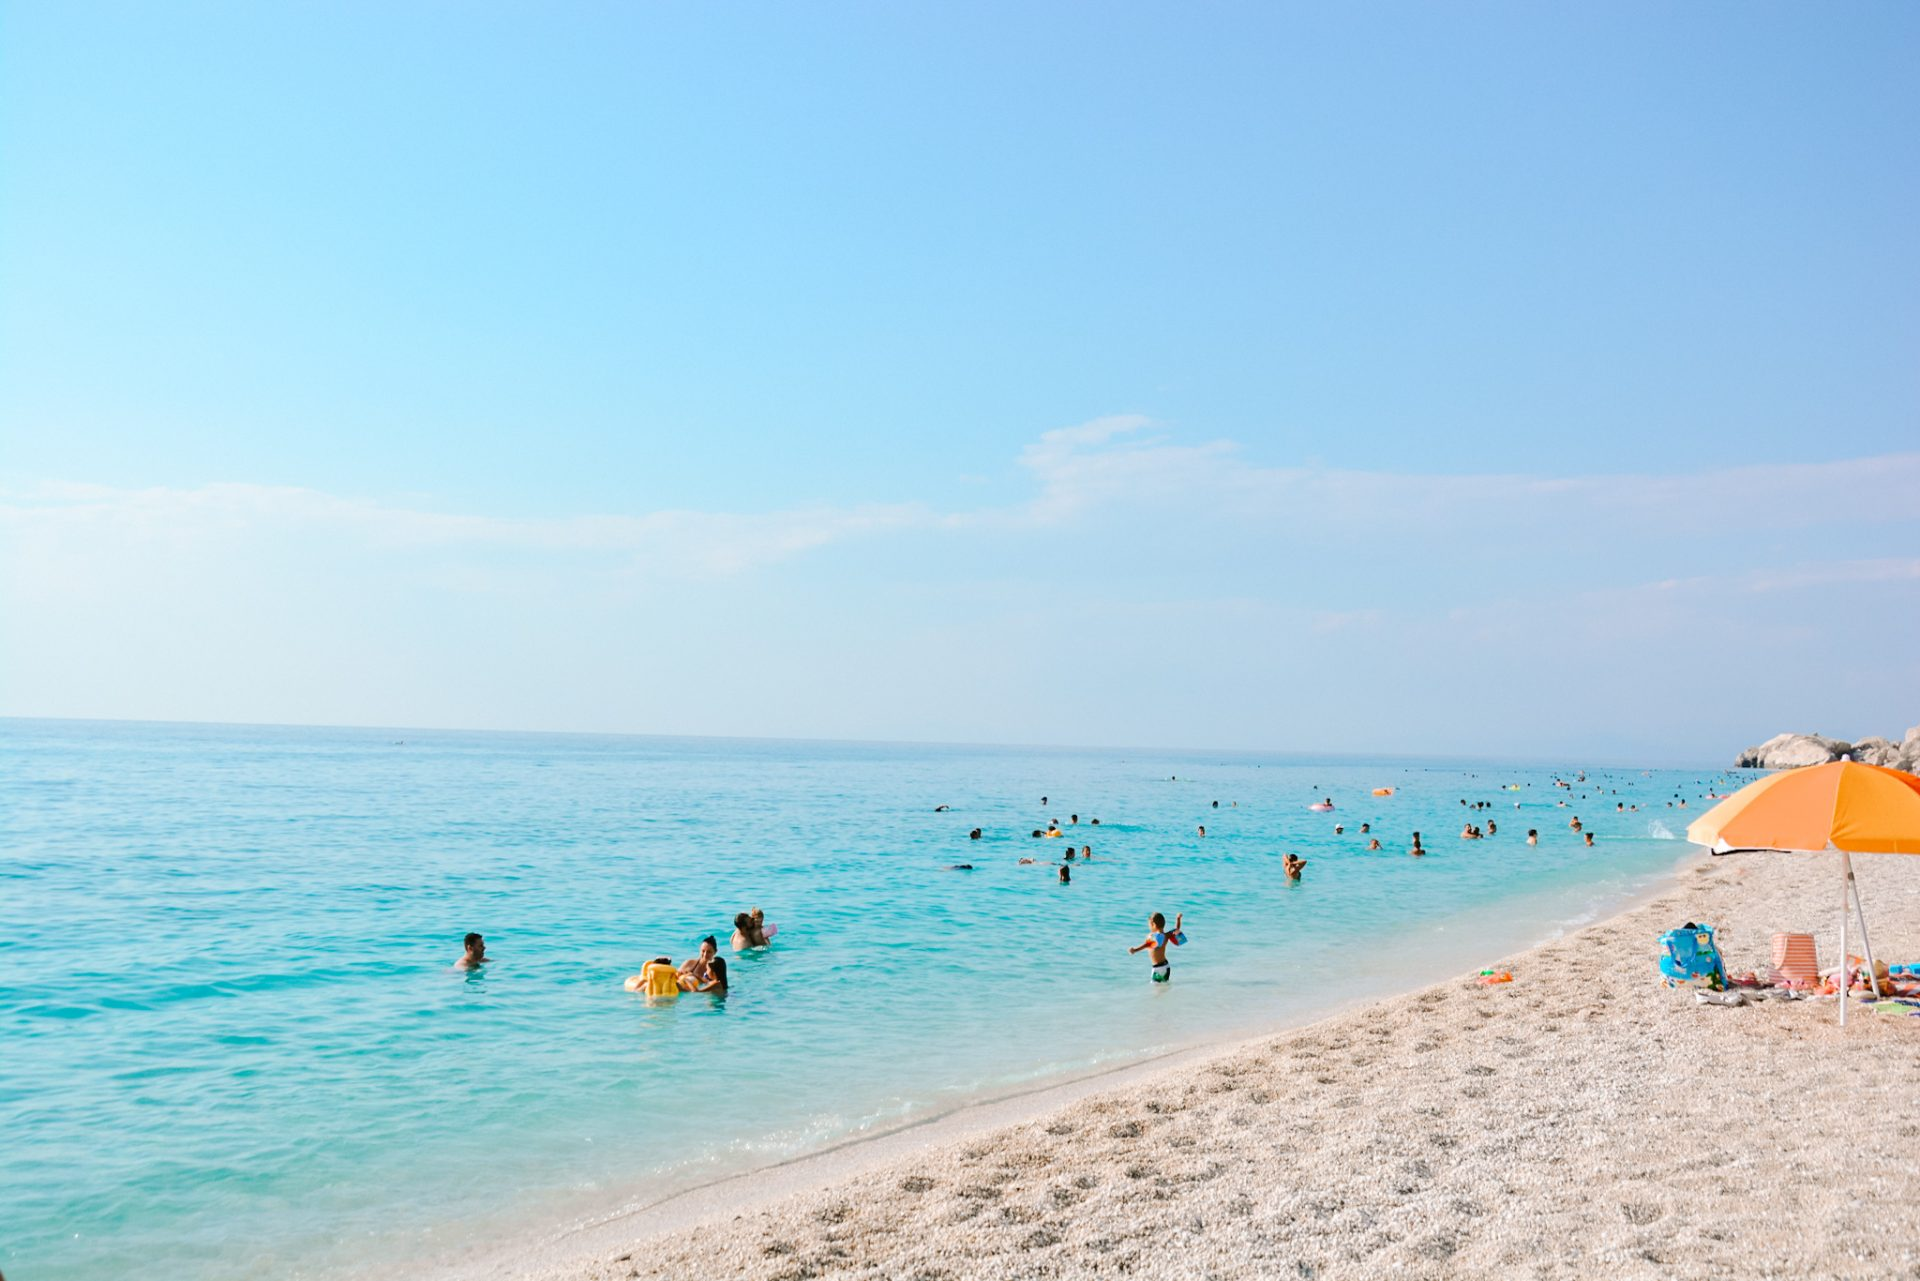 Kathisma Beach in Lefkada